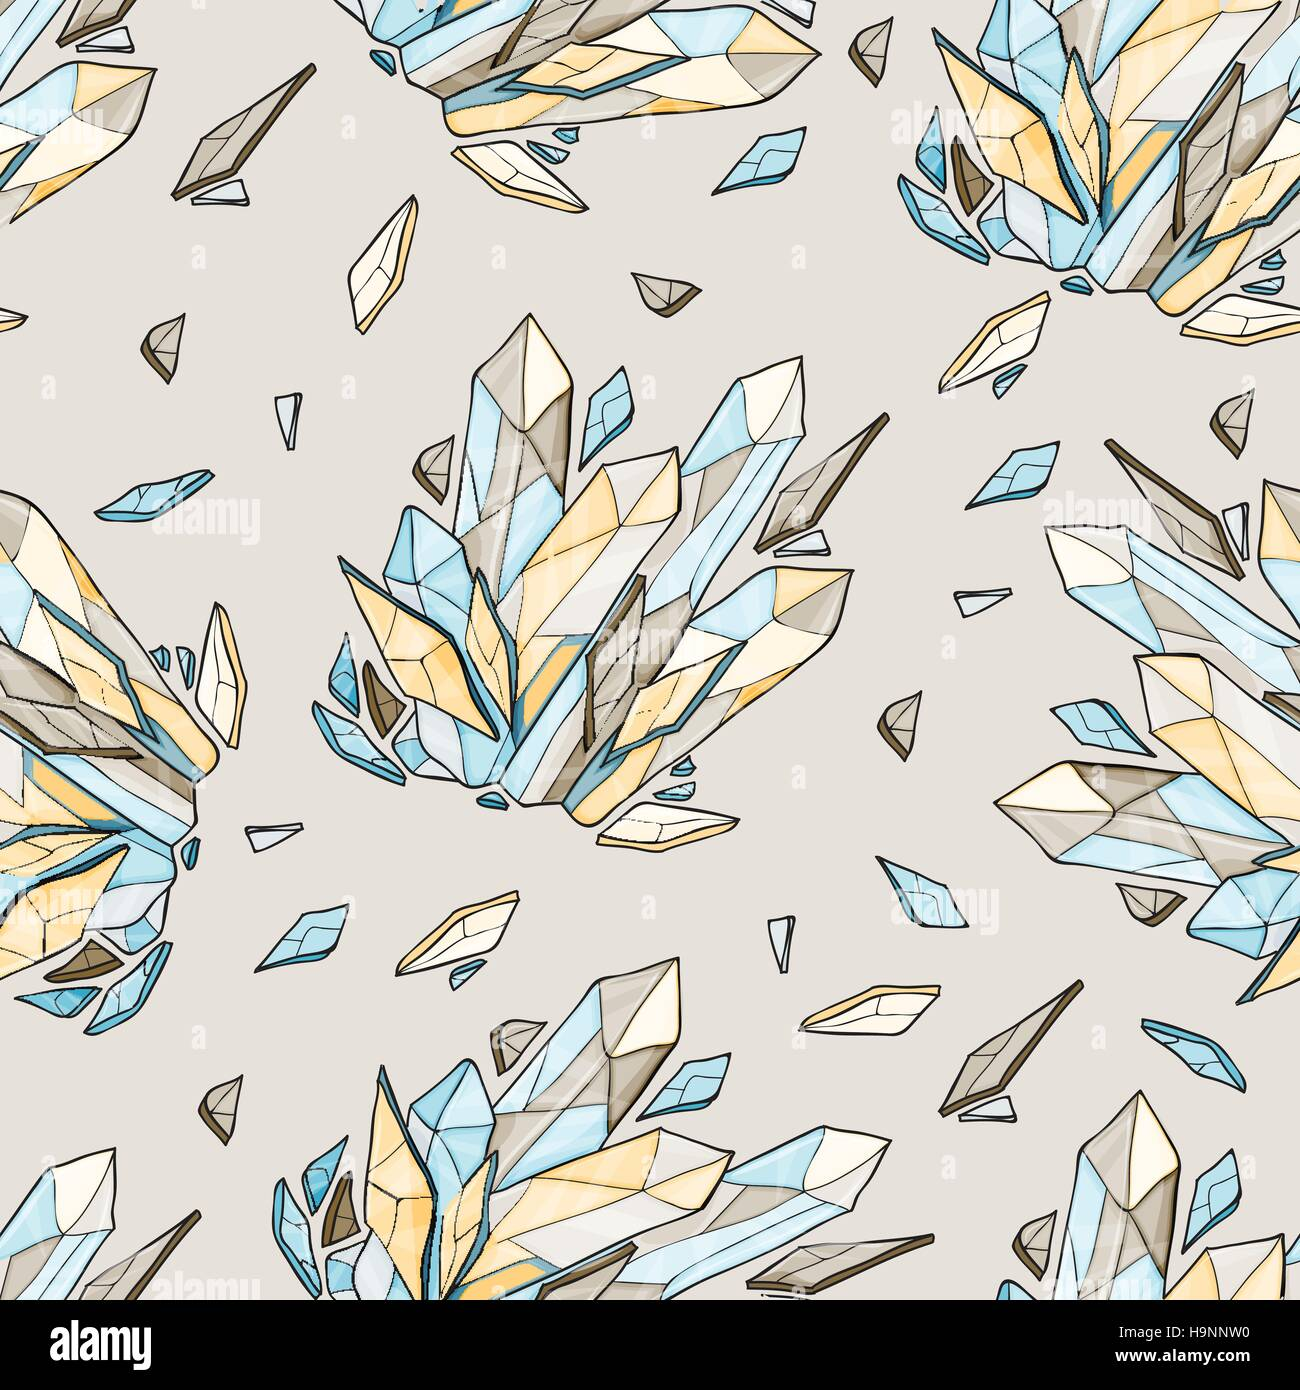 Vector seamless background of diamonds - Stock Vector